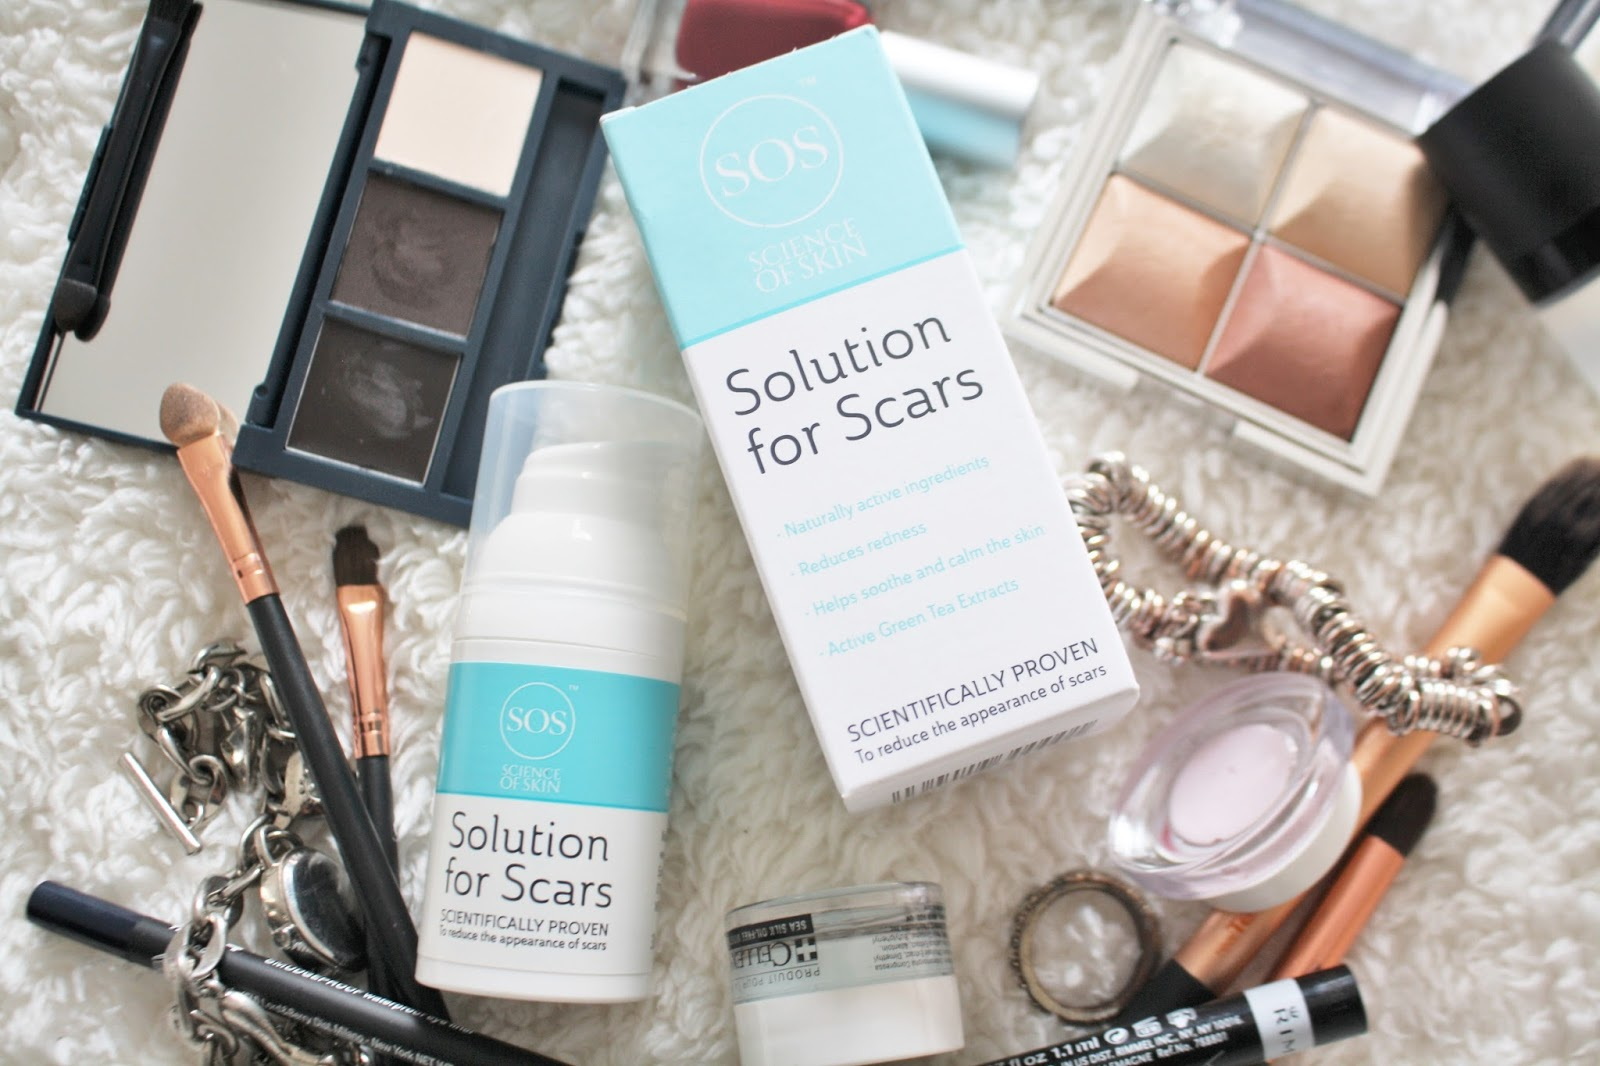 science of skin solution for scars review